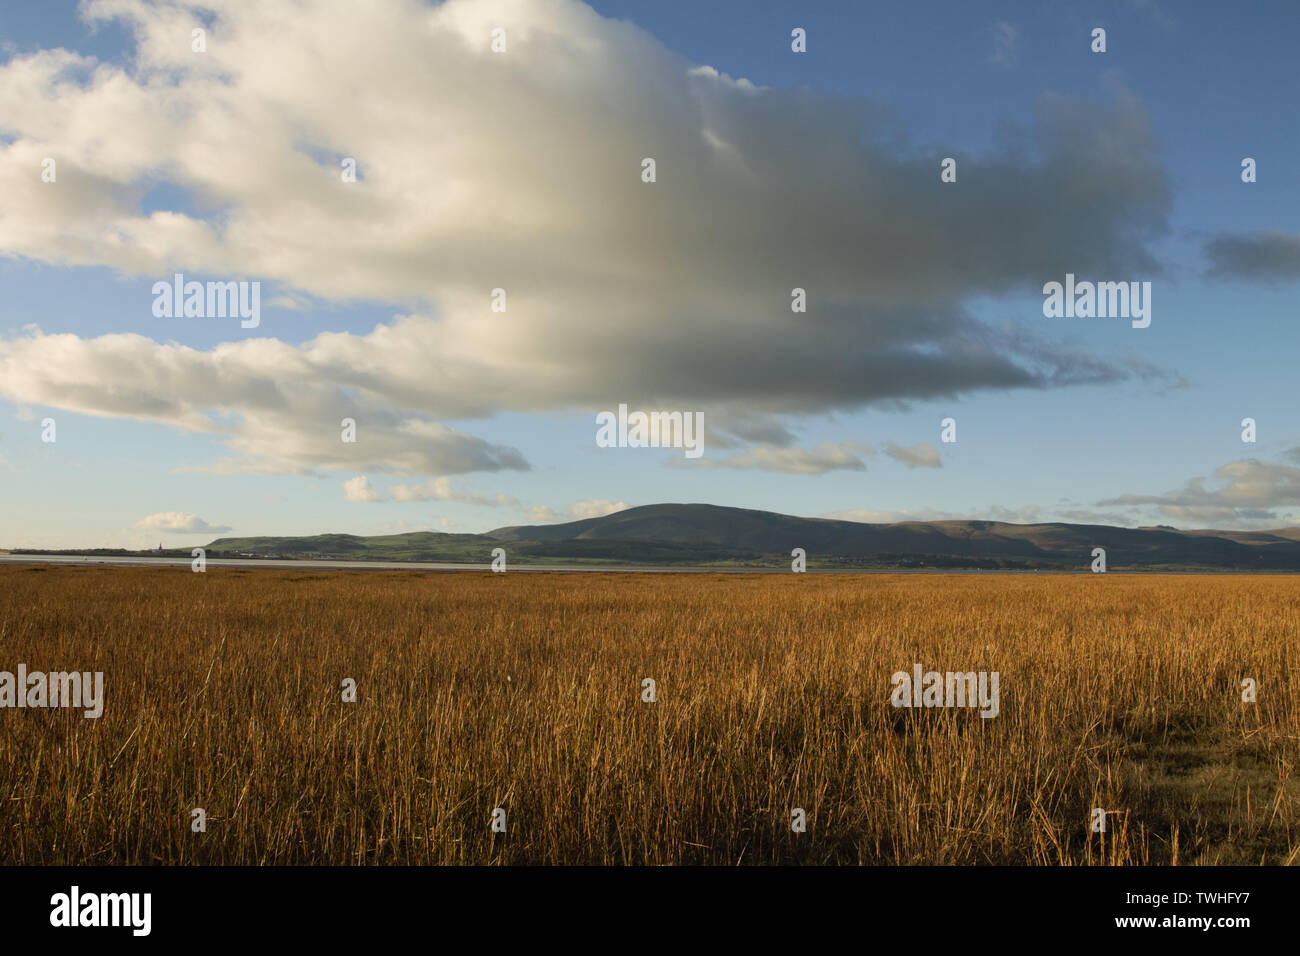 View from the shoreline near Dunnerholme and Askam-In-Furness. Black Combe and Millom viewed across the Duddon Estuary on the Cumbrian Coastline. Stock Photo